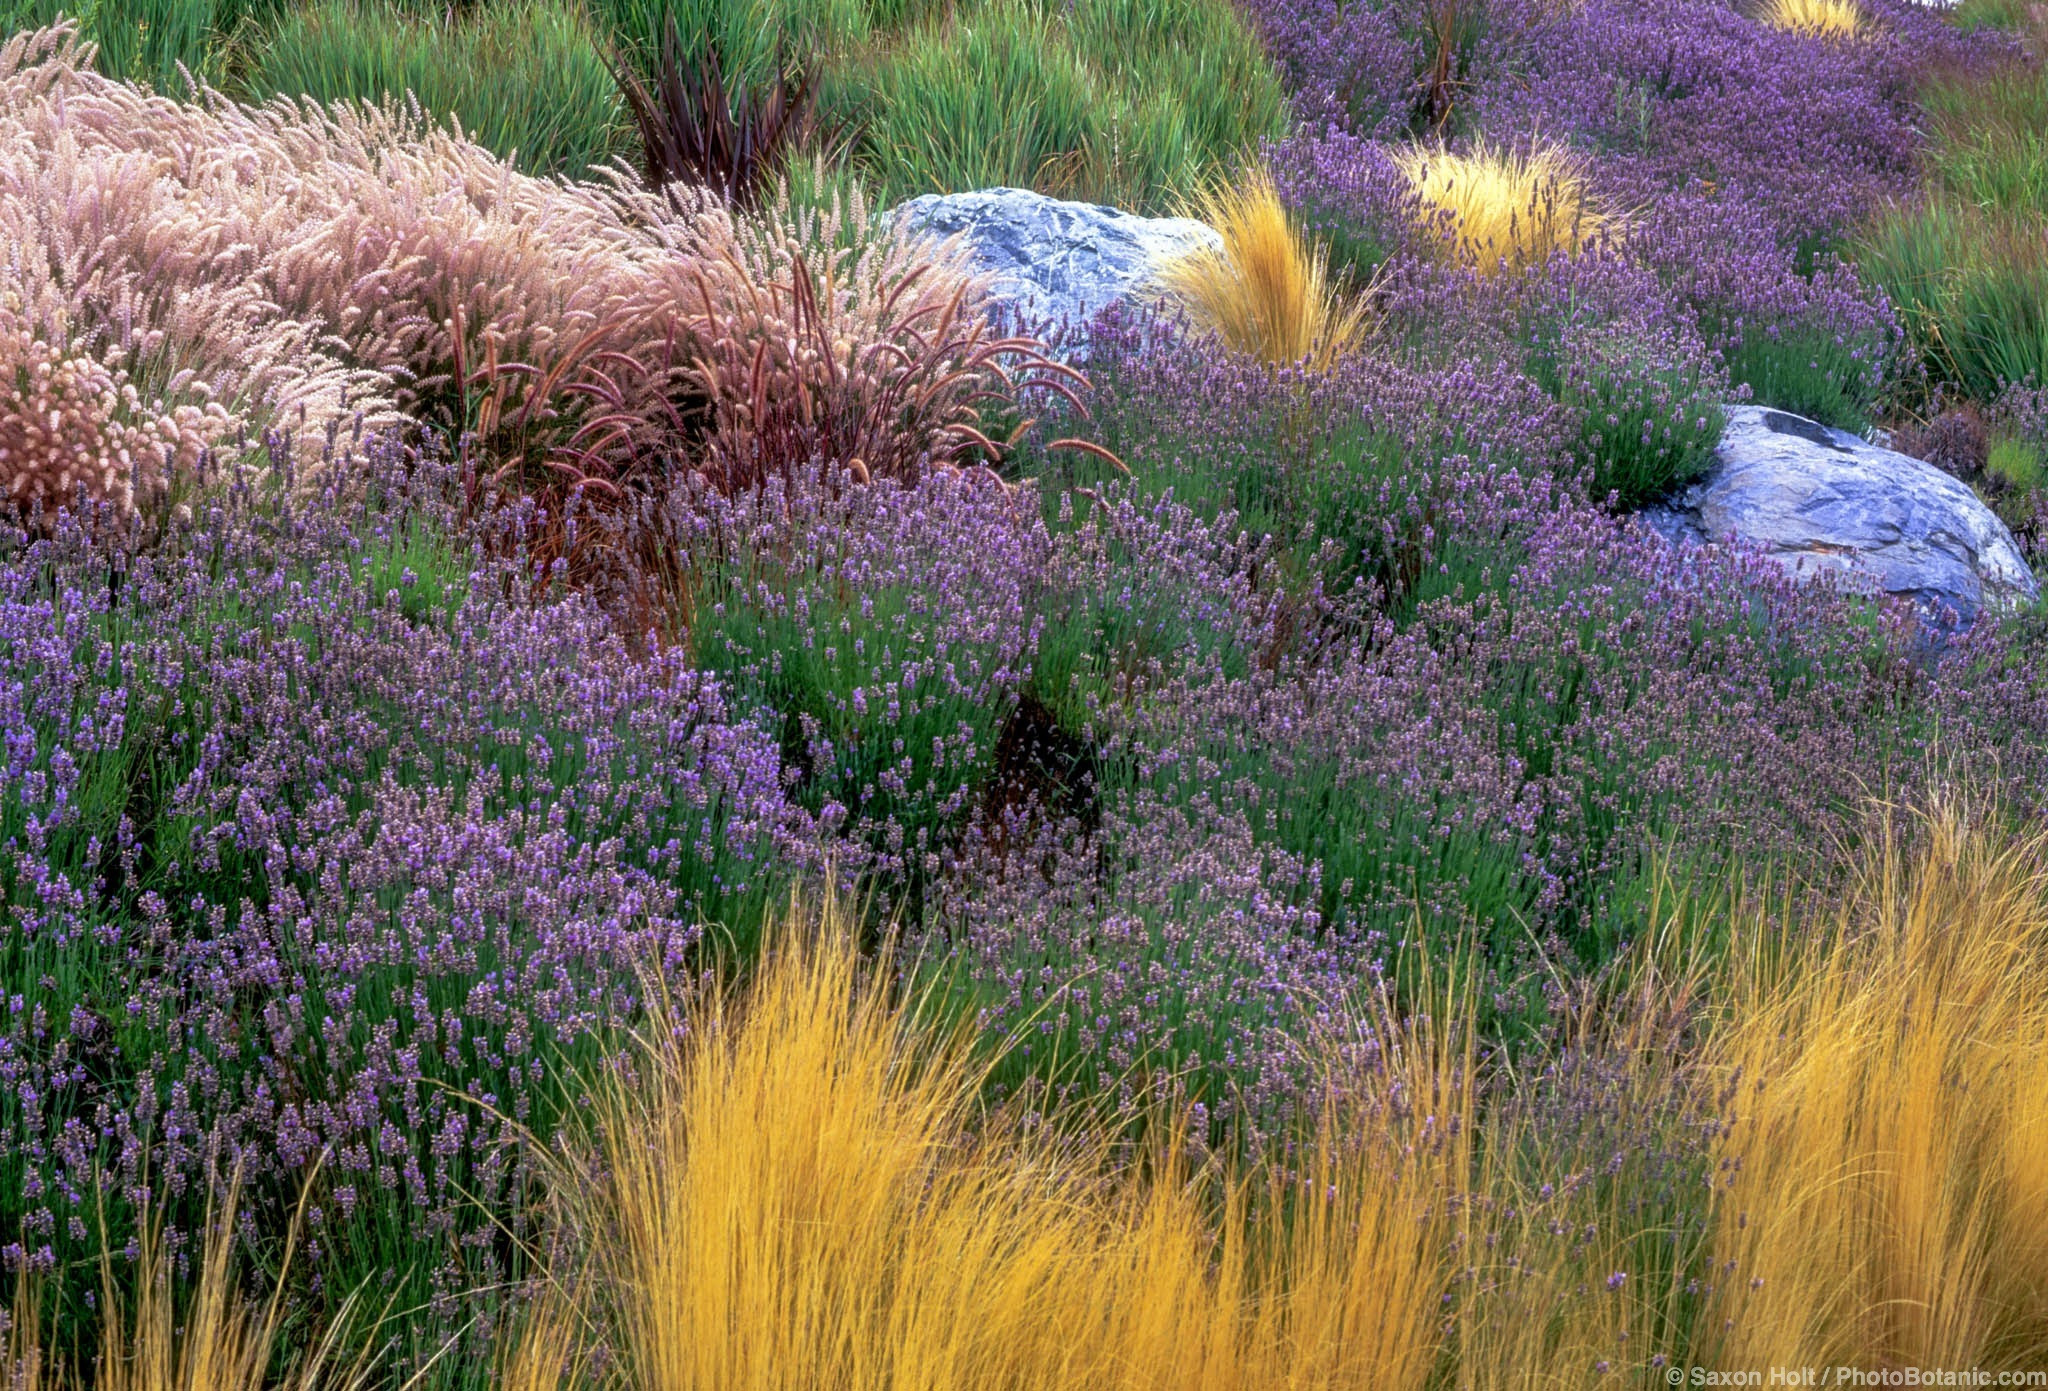 Perennials summer dry celebrate plants in summer dry for Grassy plants for landscaping